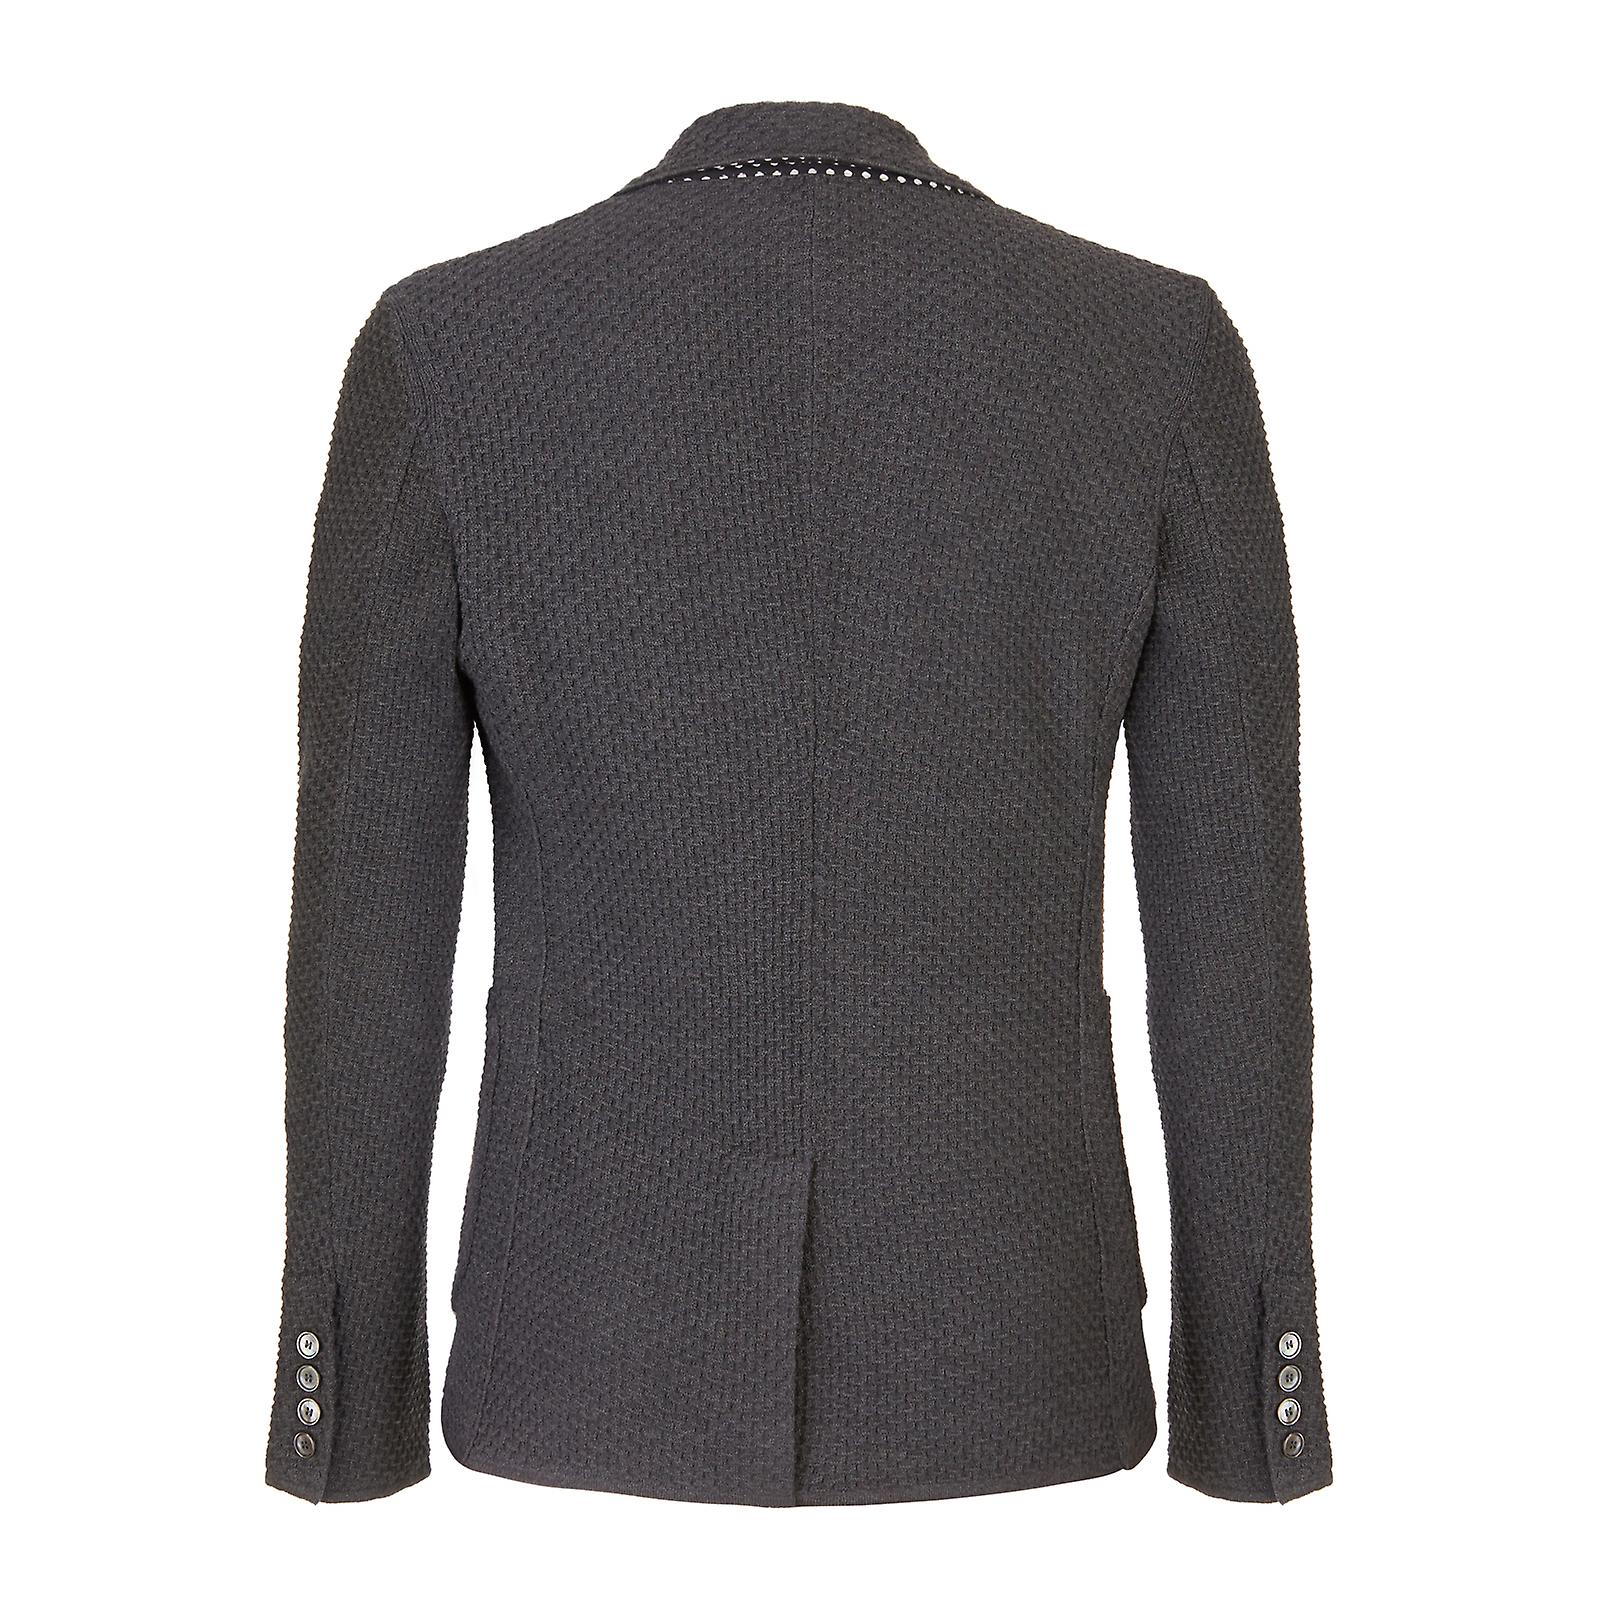 Neuer Modestil von Fantastisk pris Dolce & Gabbana Jacket With Lapels In Solid-Coloured Wool Blend m0tMA